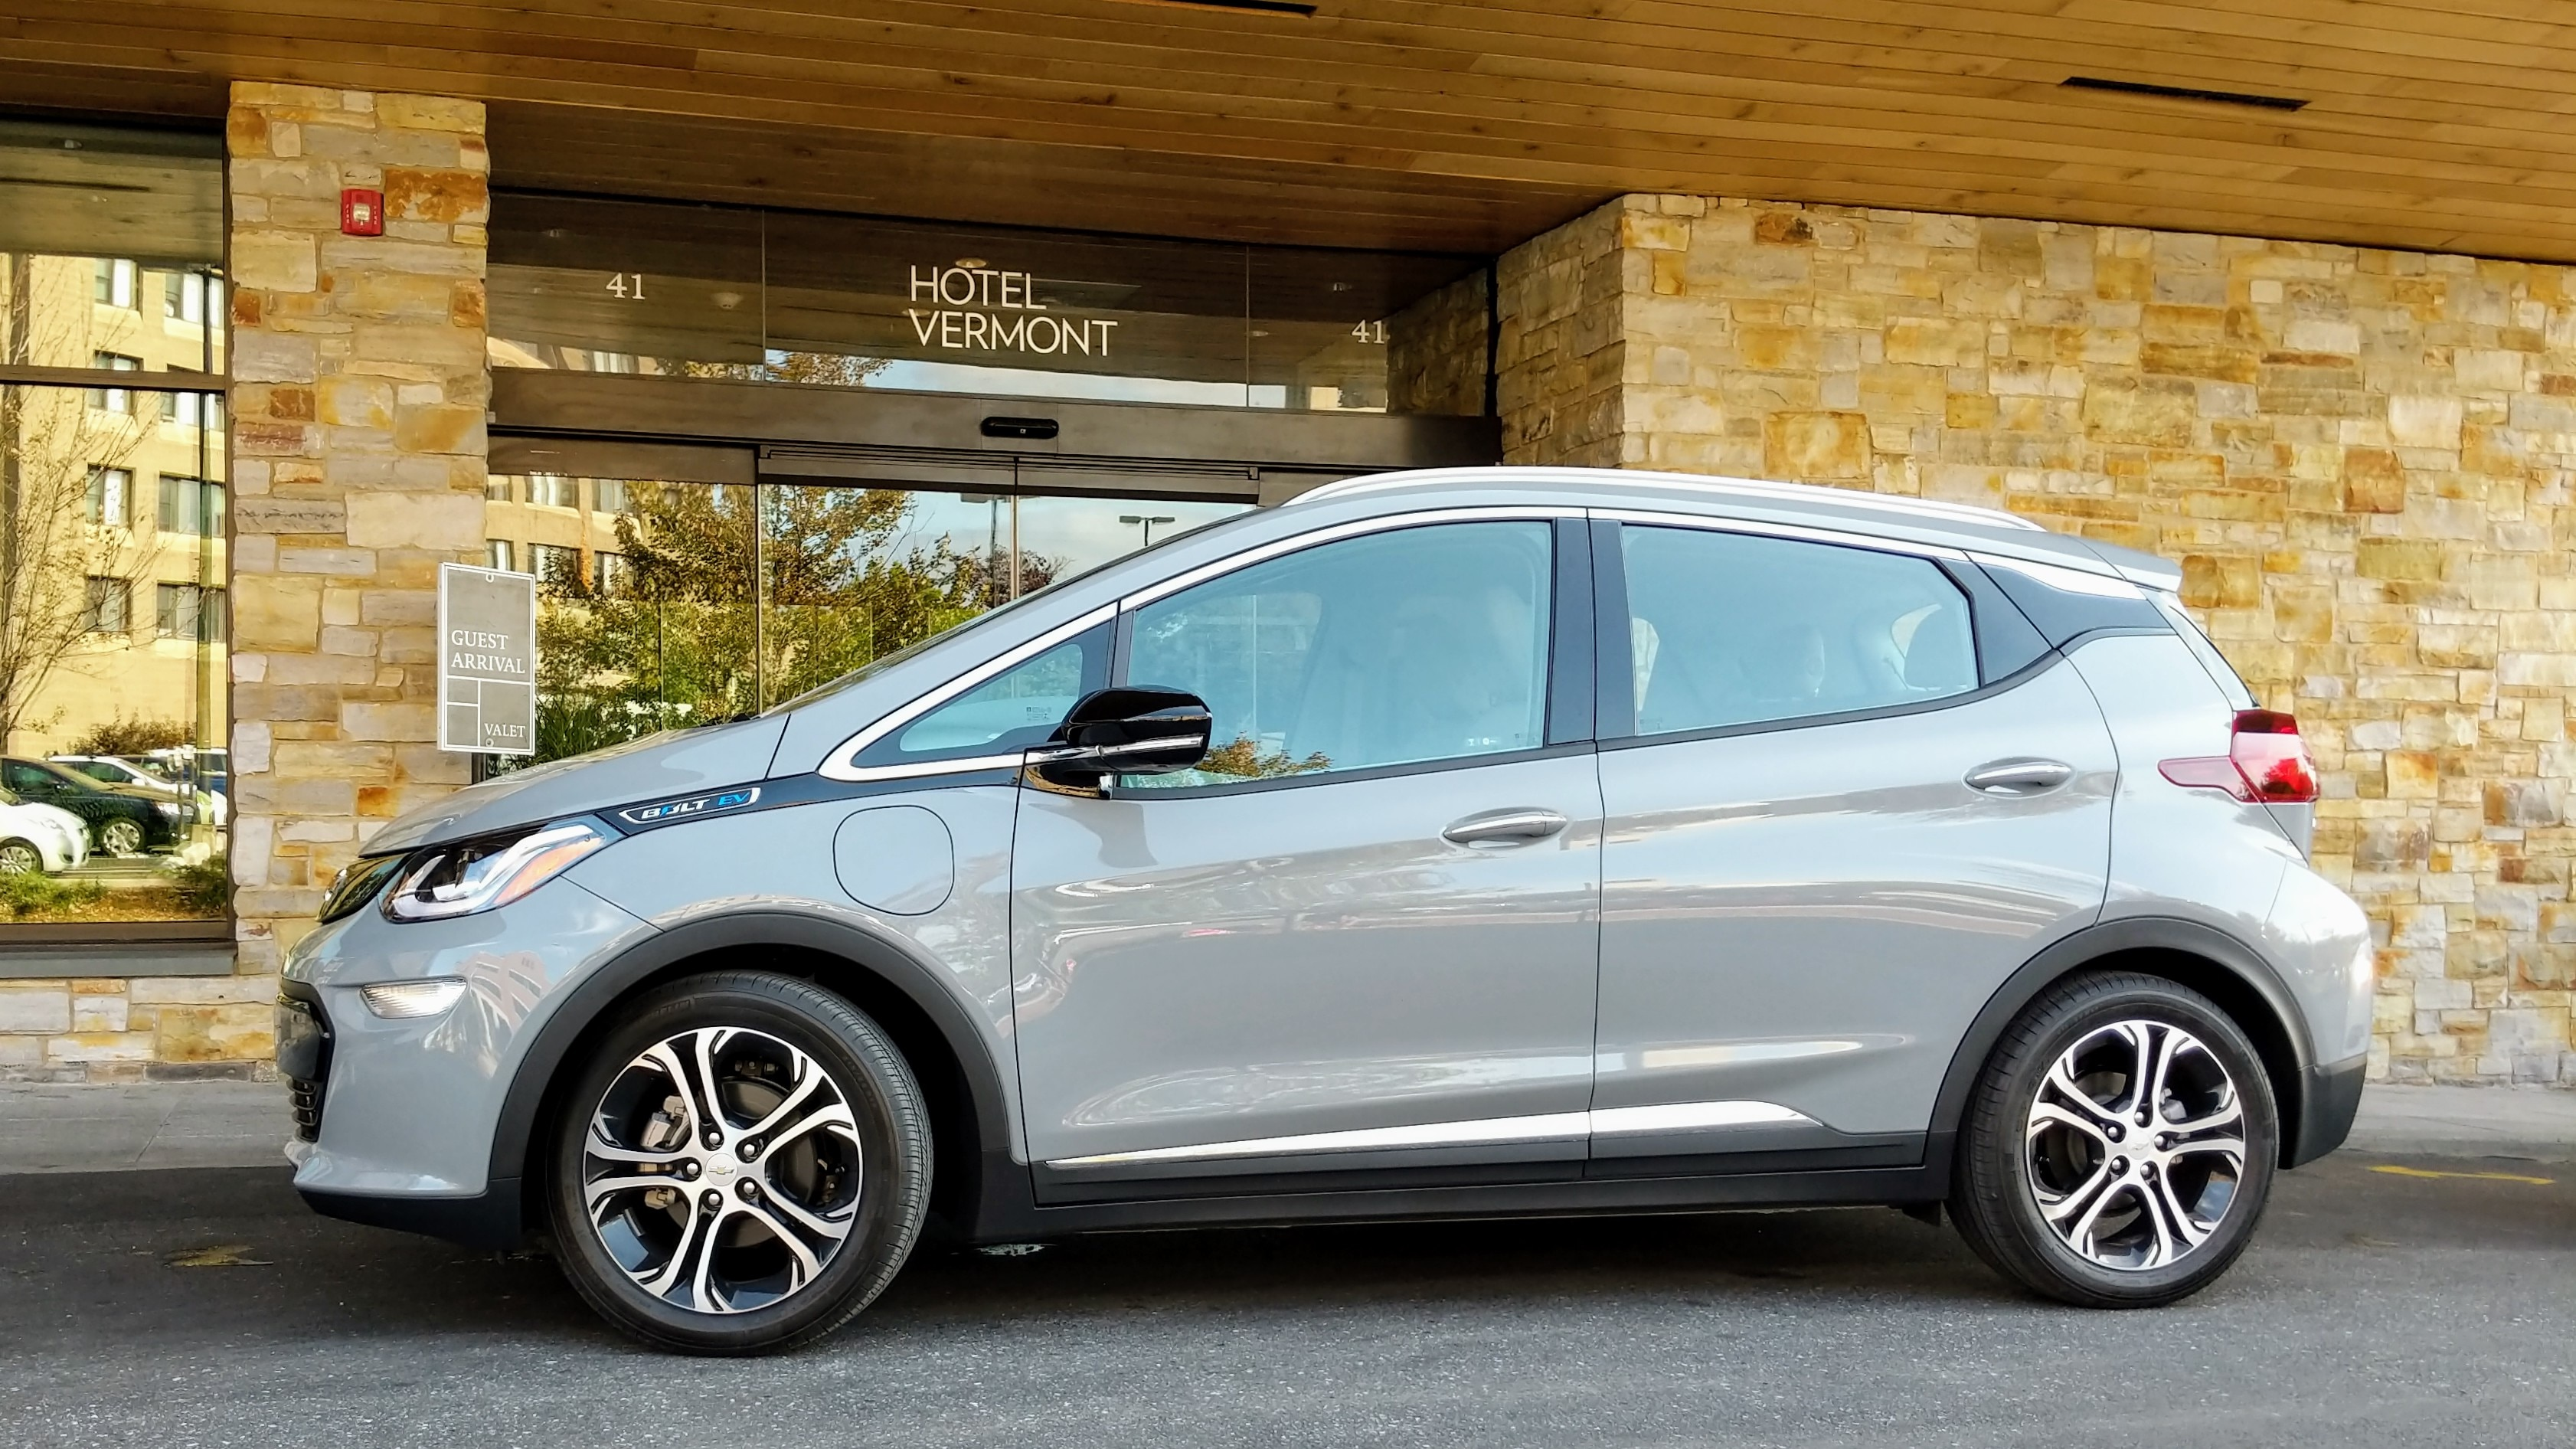 2019 Chevrolet Bolt EV and 2019 Chevrolet Volt PHEV Review